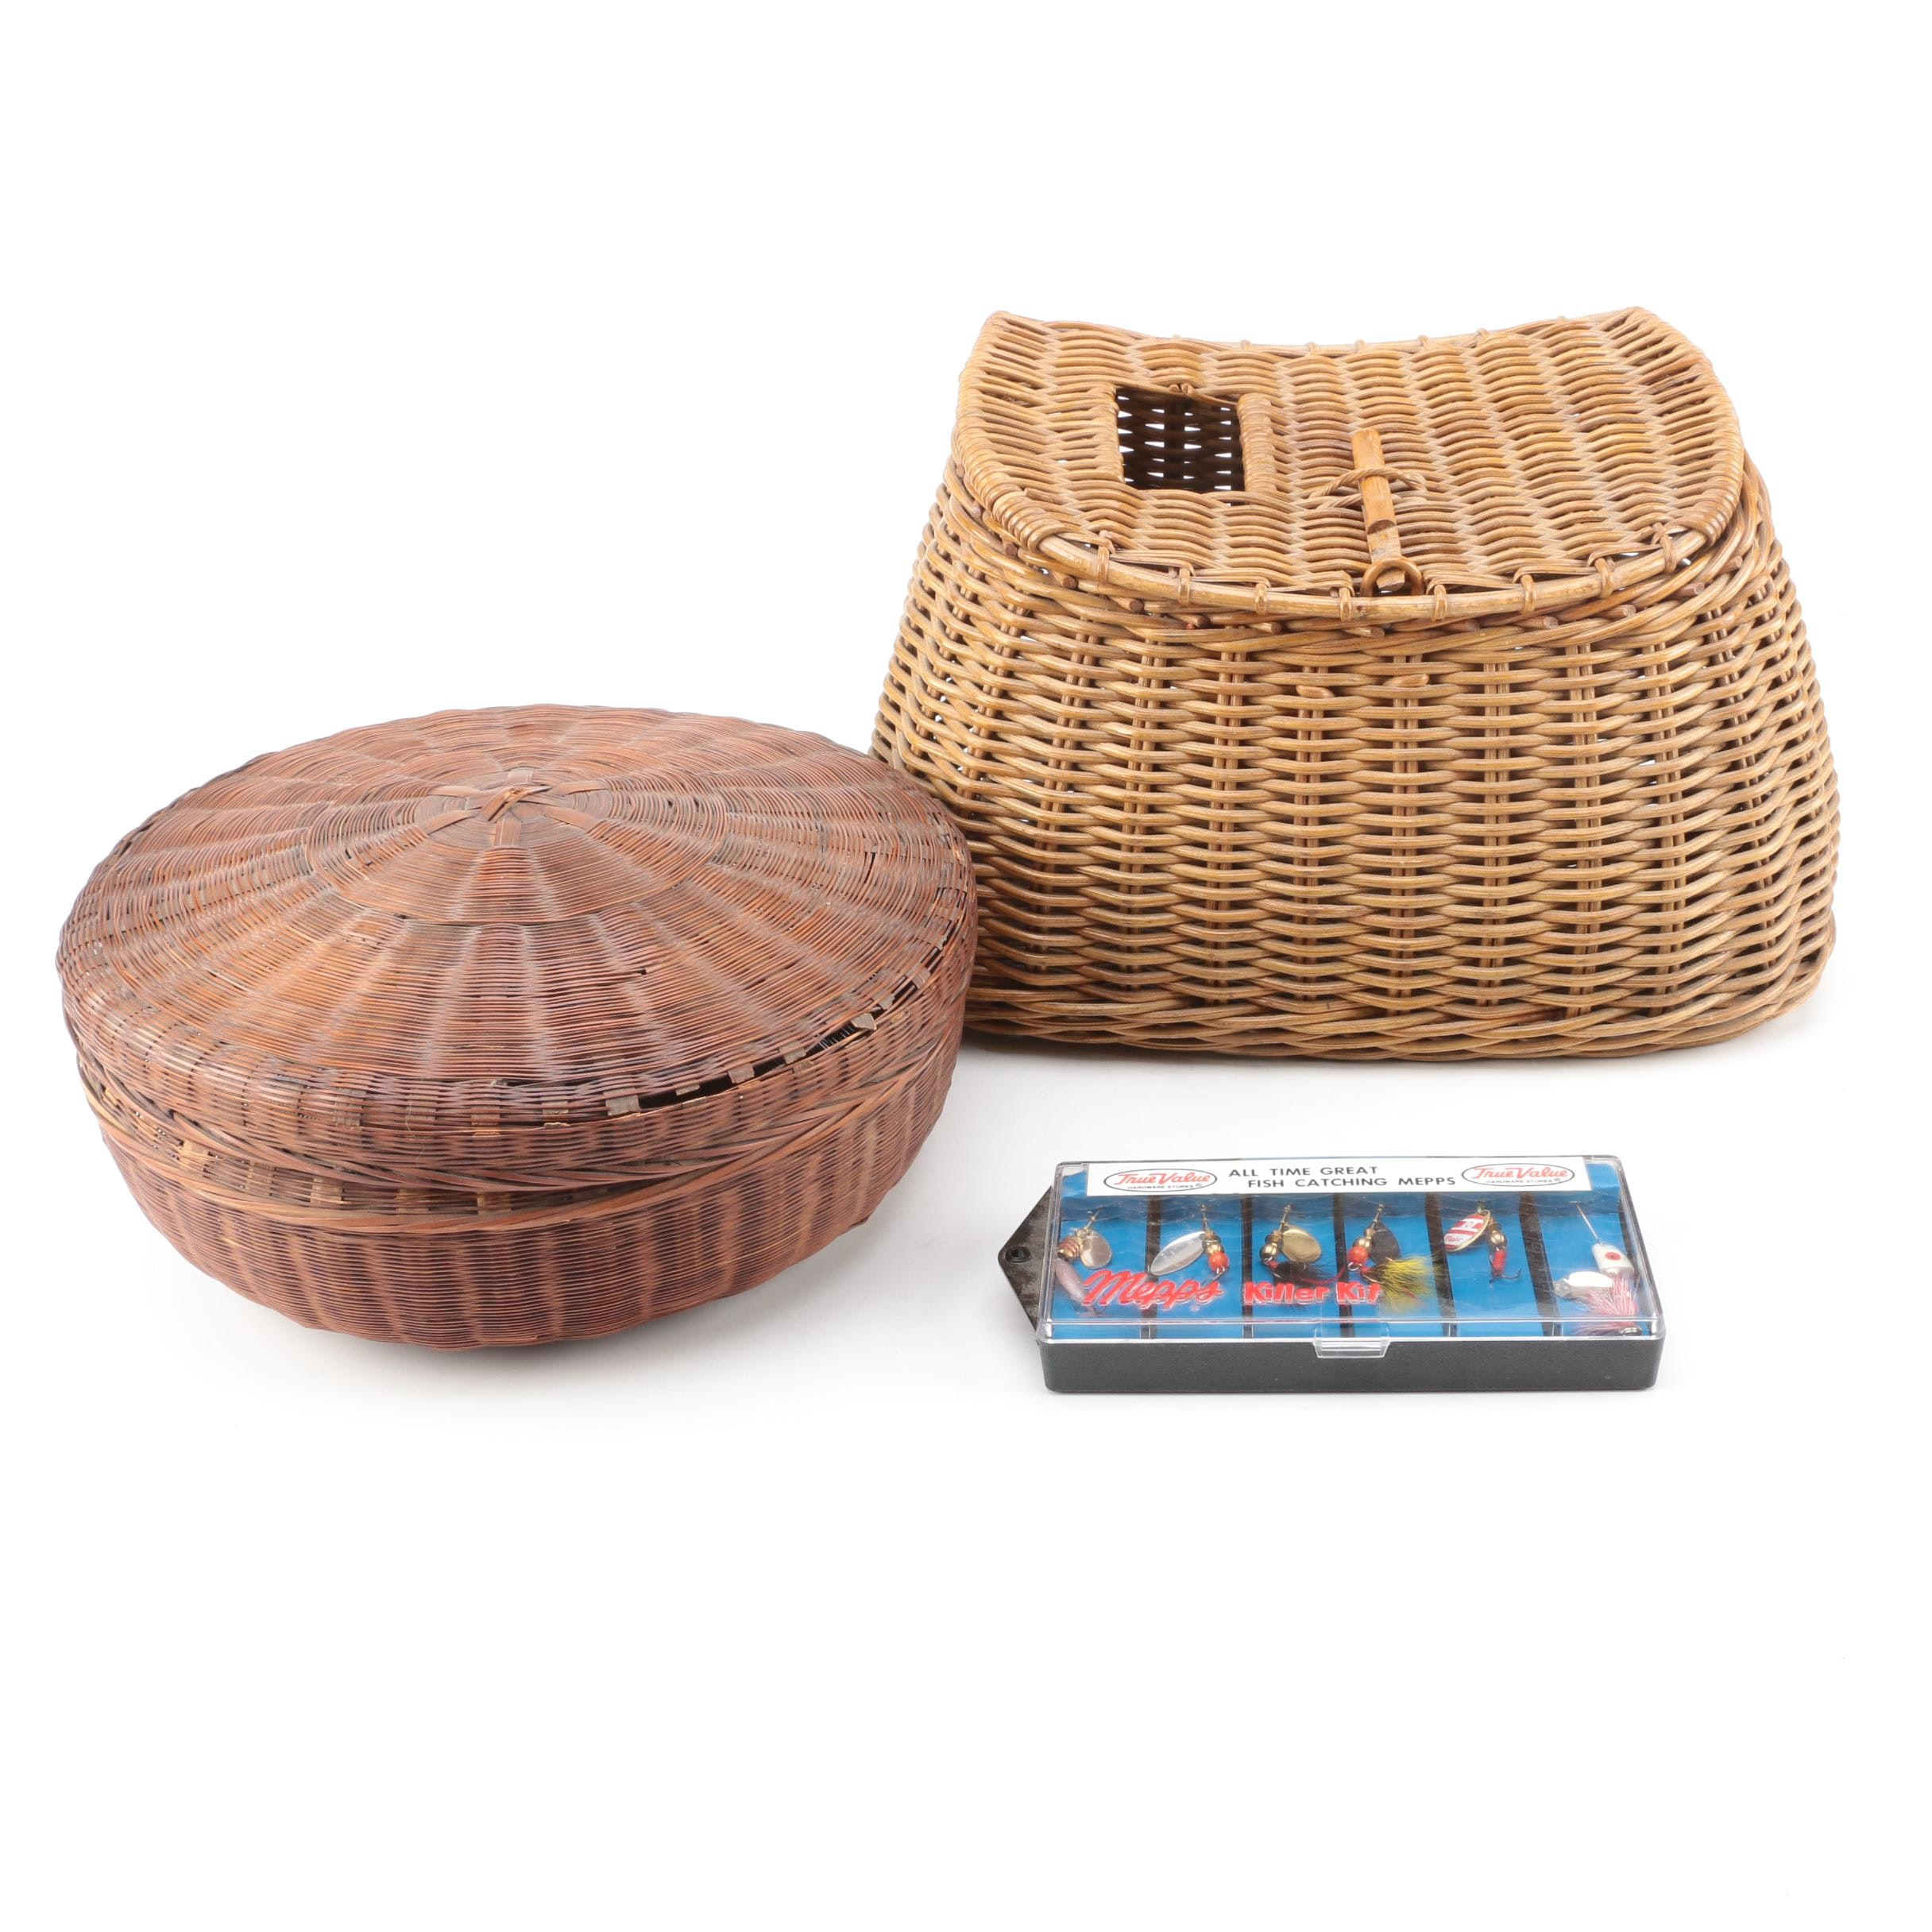 Wicker Tackle Boxes and Lures